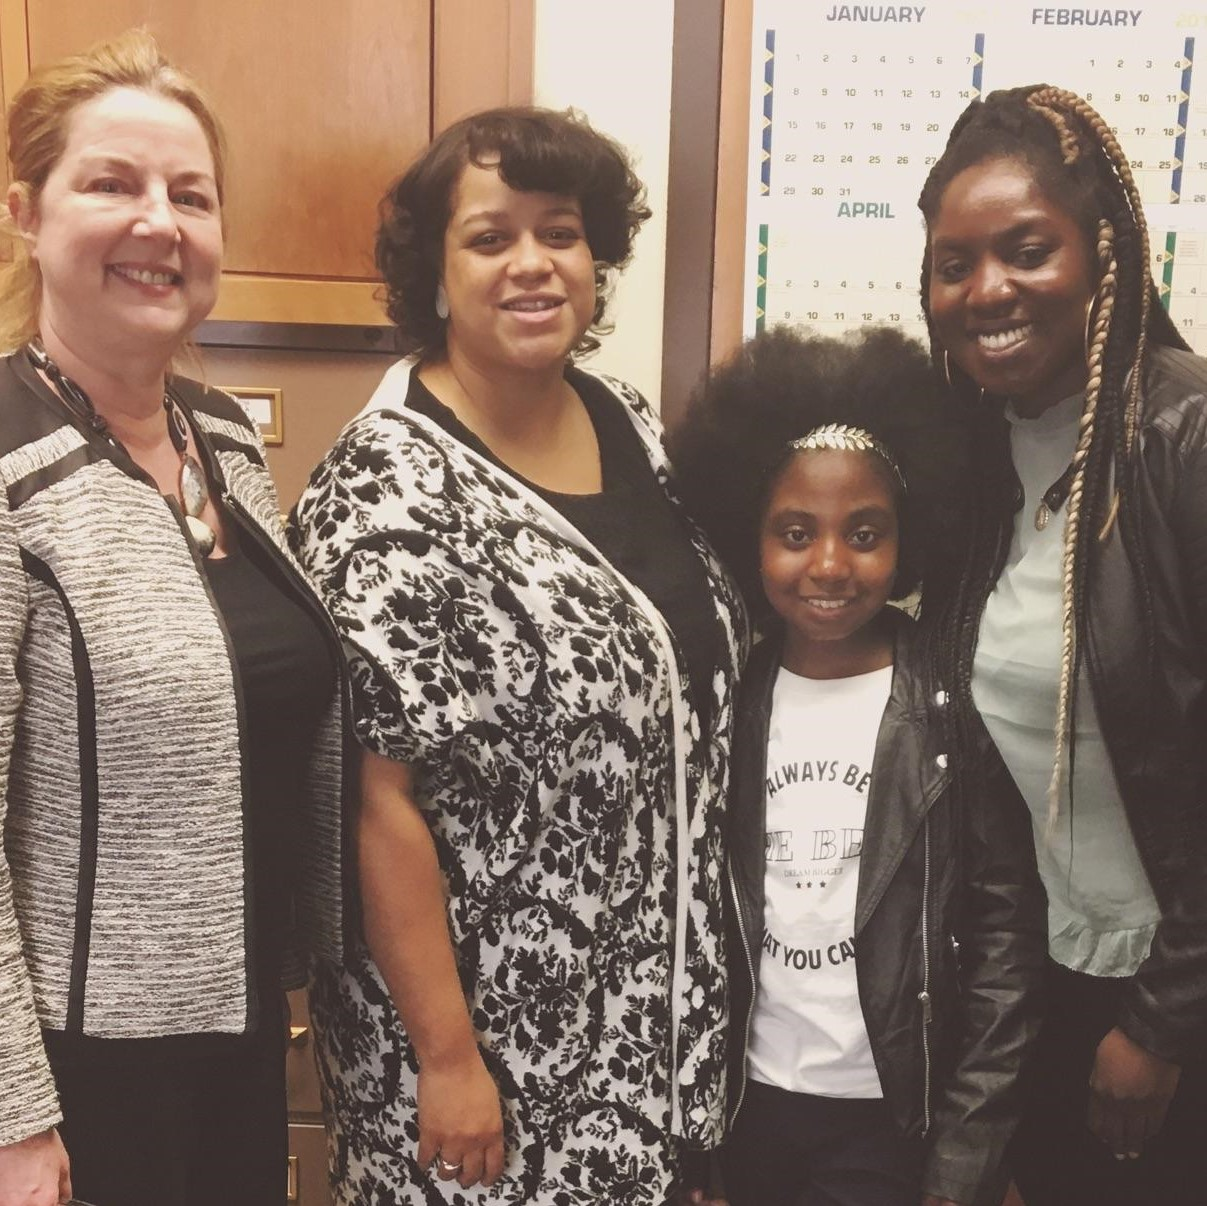 Pictured (left to right) ADA Advocate, Donna Drumm, Esq., NY Assemblywoman Michaelle C. Solages, Assembly District 22, Dream Shepherd of DreamsLaw, Diana Lemon - Dream's Mother & Activist Extraordinaire!